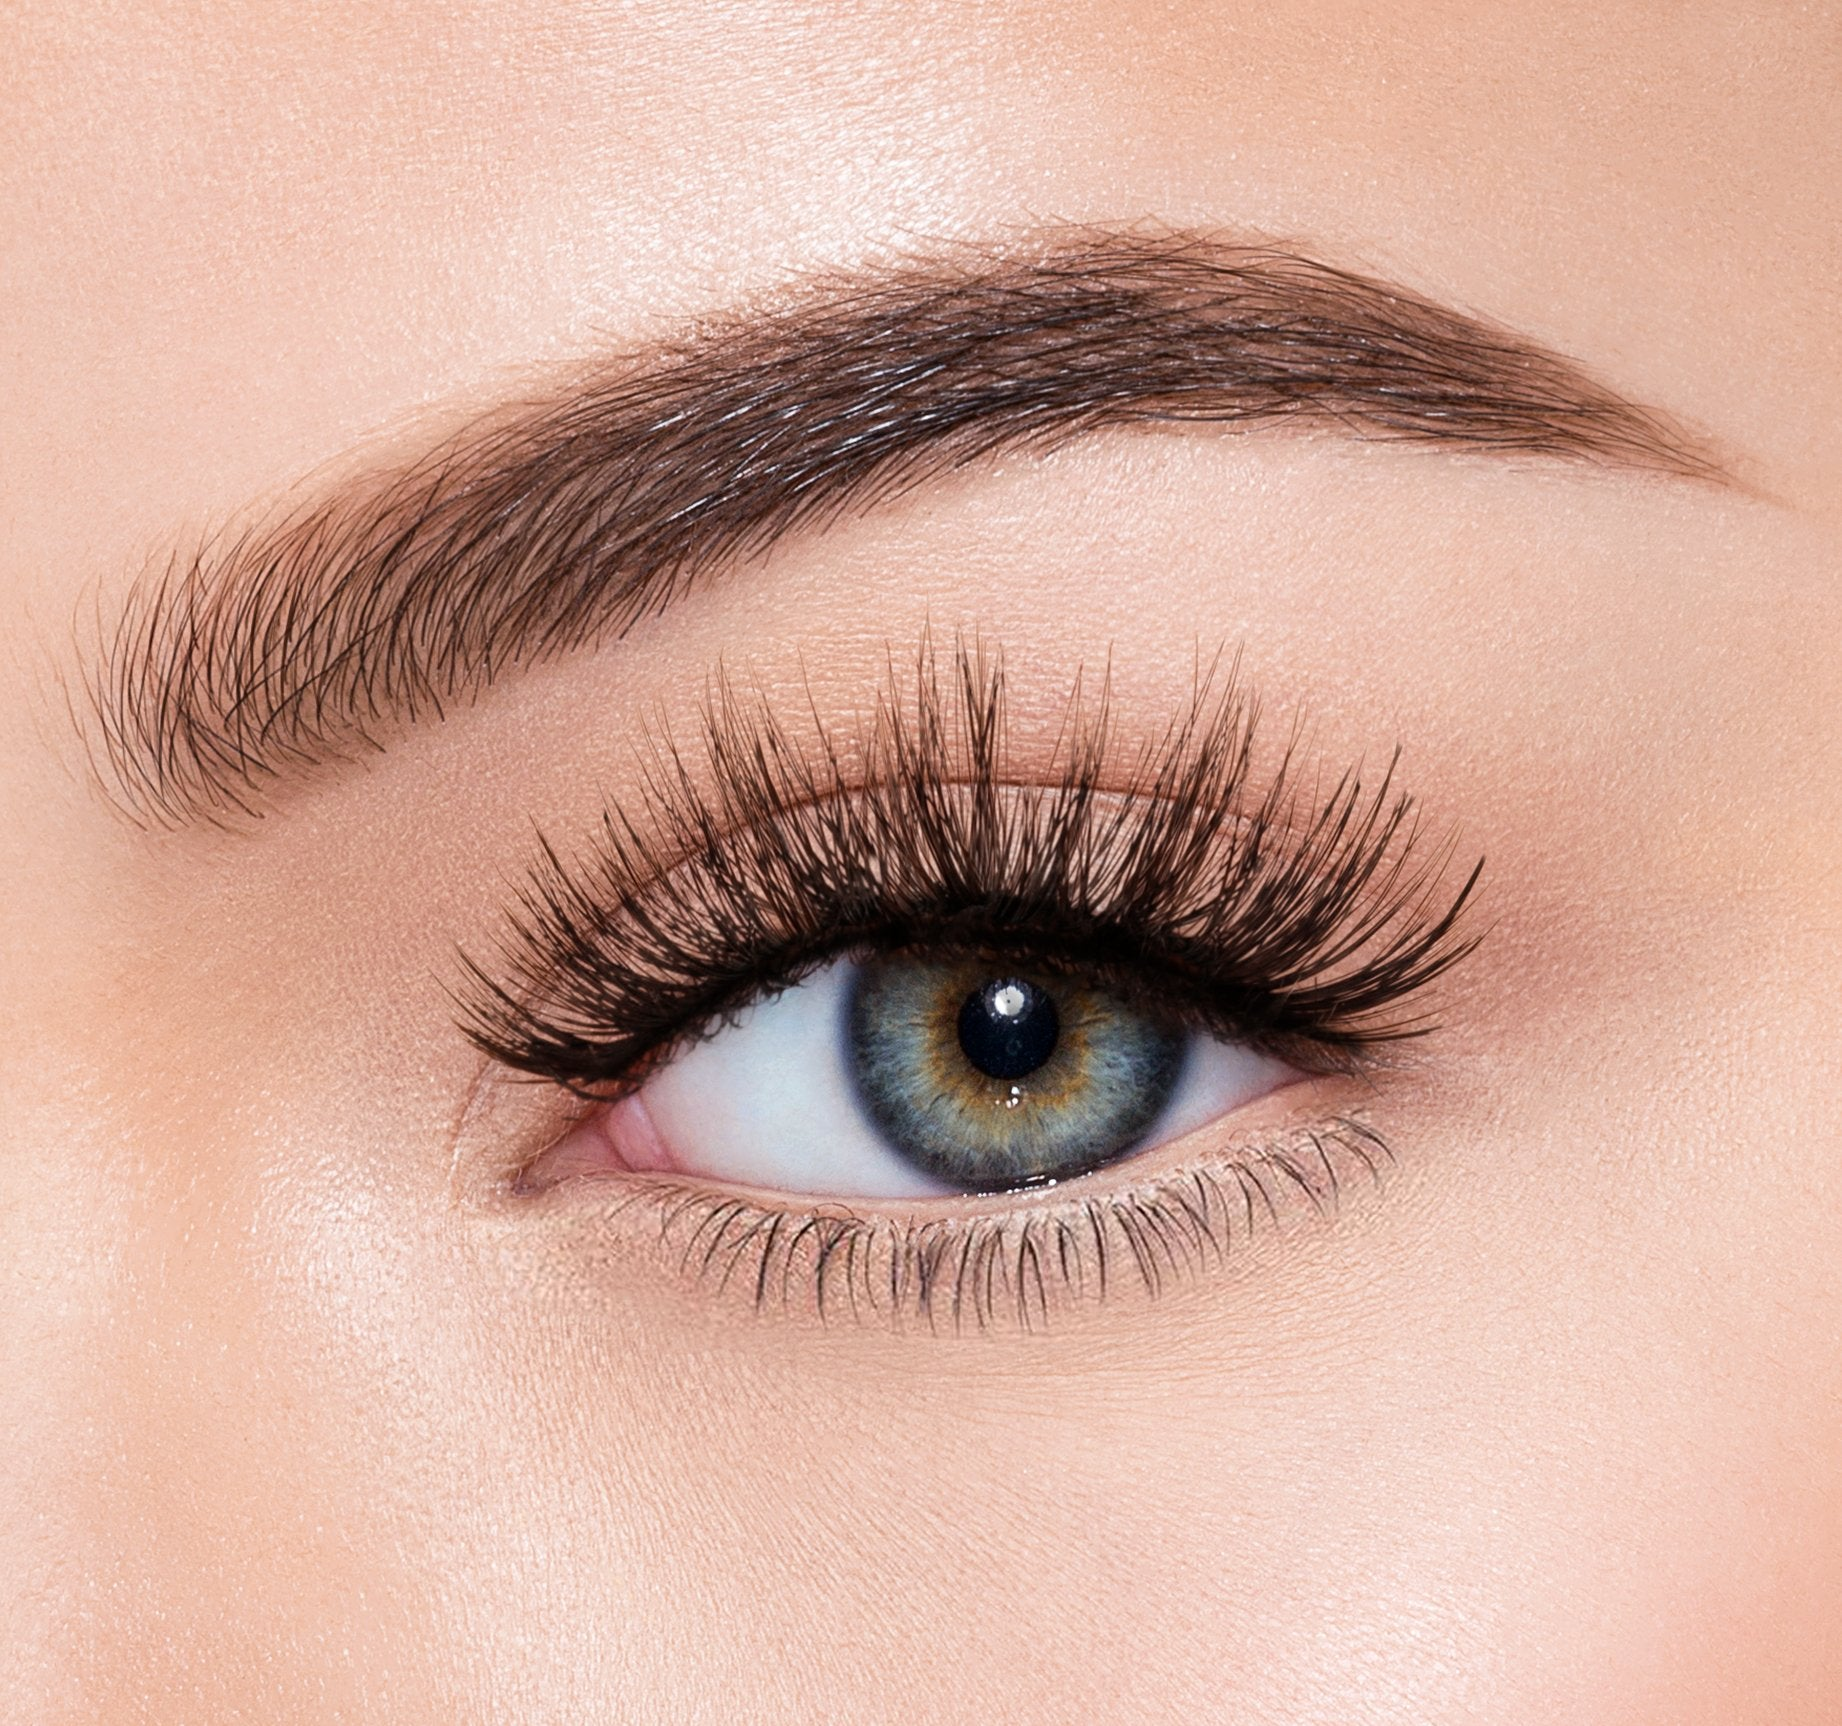 PREMIUM LASHES -  GLAMBASSADOR ON MODEL, view larger image